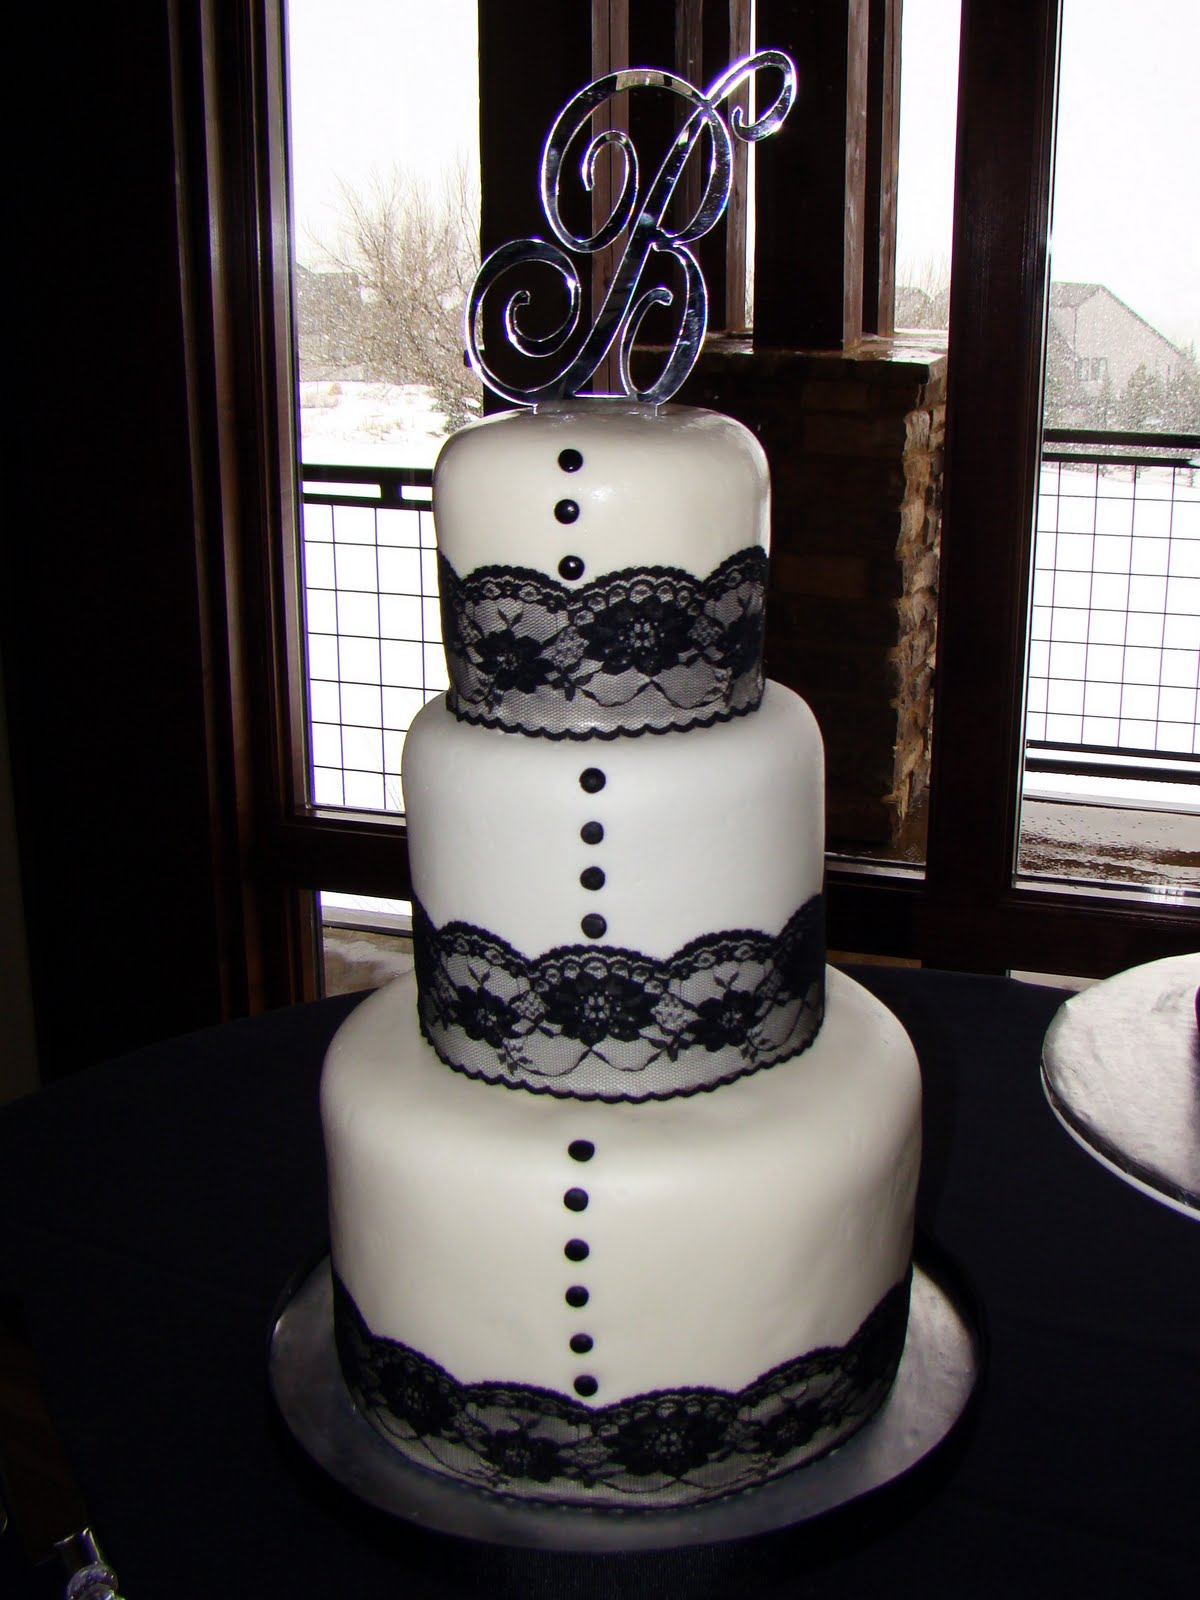 Layers of Love Black Lace wedding cake